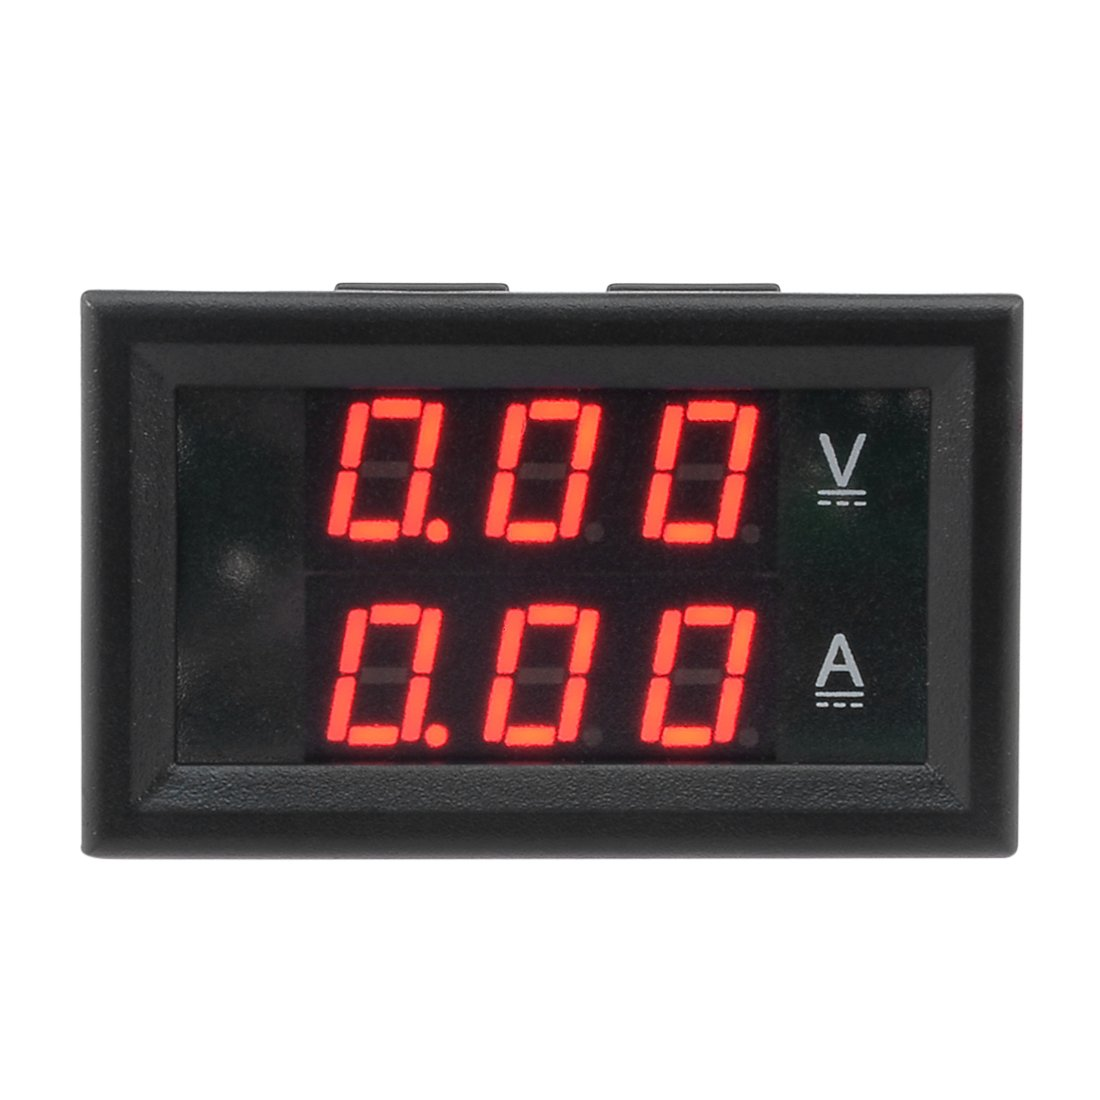 Best rated in automotive replacement amp meter gauges helpful uxcell digital dc voltmeter ammeter 0 999v 10a measuring current tester with 5 wires 1 pcs keyboard keysfo Images